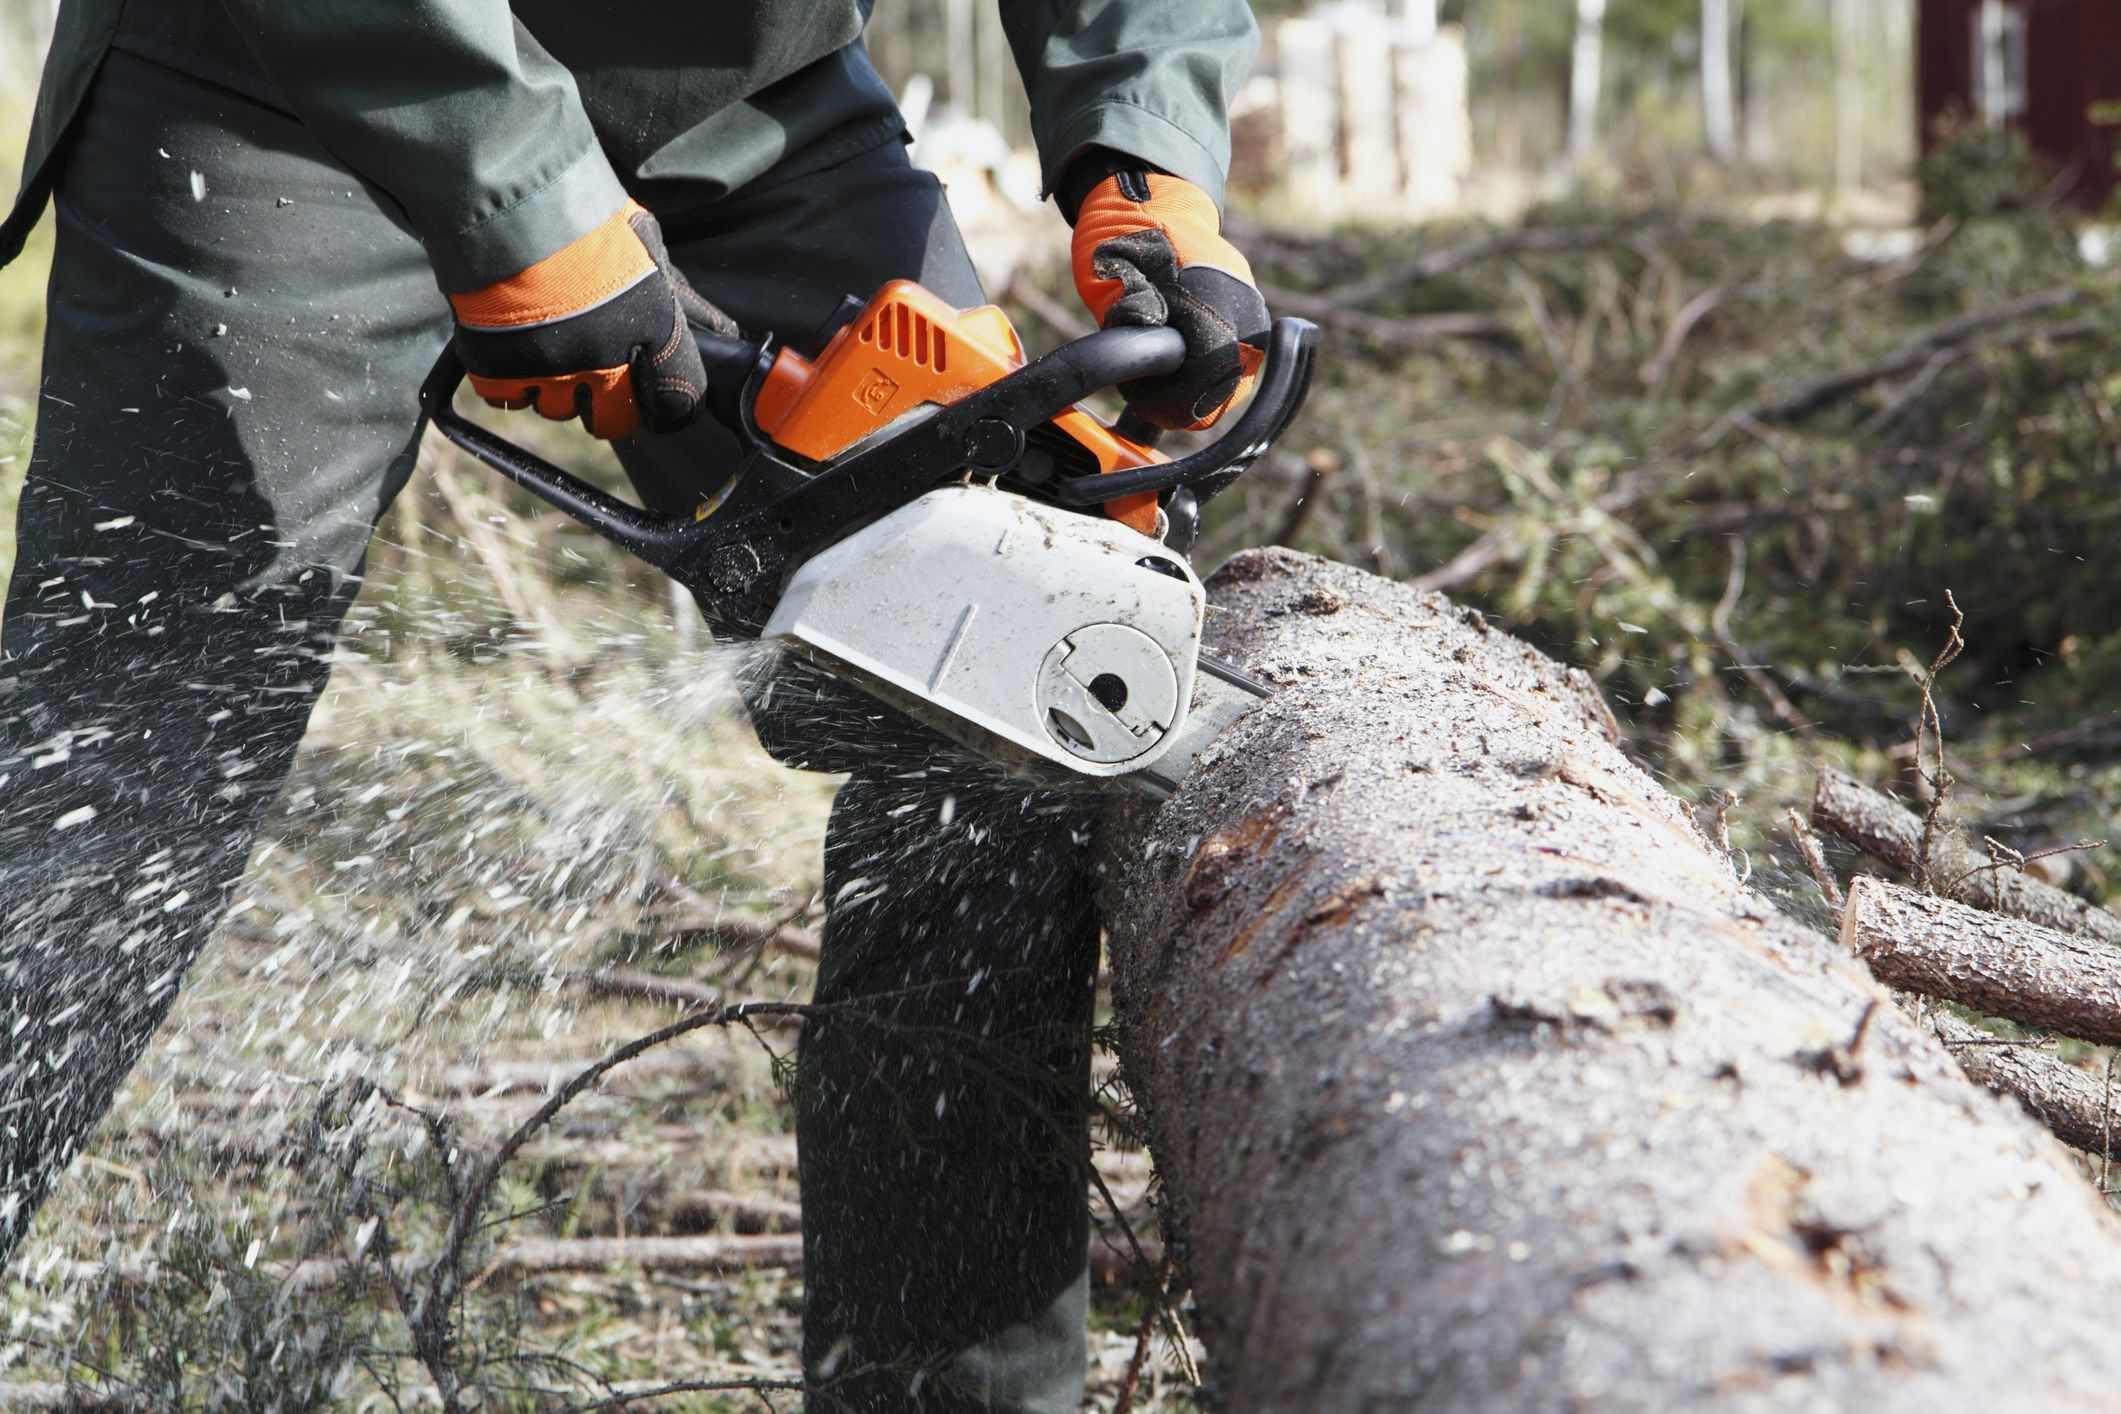 Top 5 Tree Trimming Tools For Landscaping